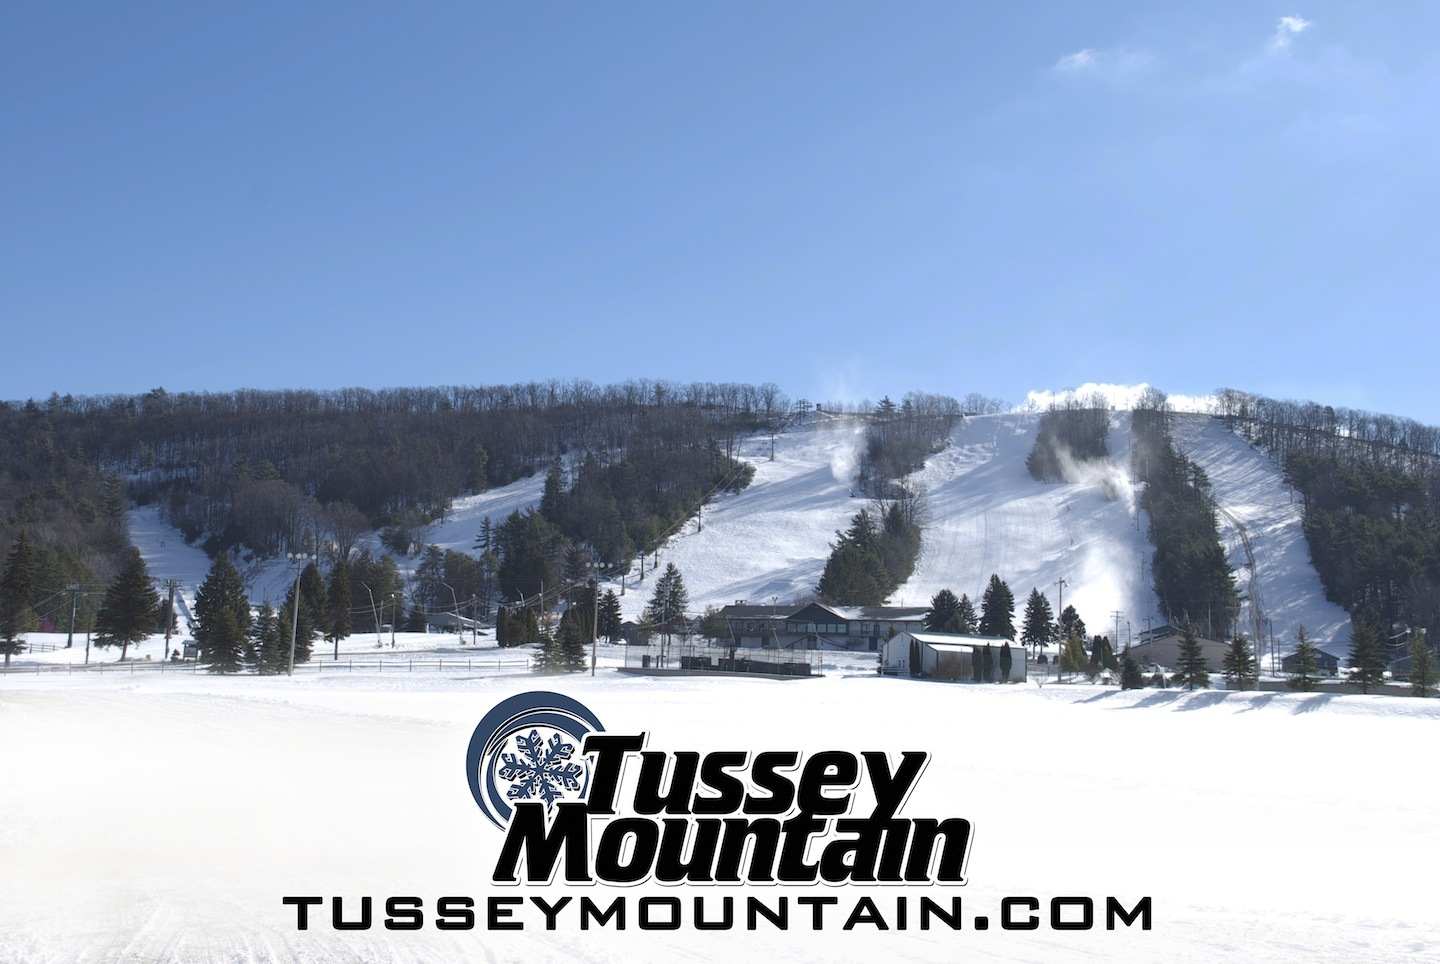 tussey mountain will open its slopes today